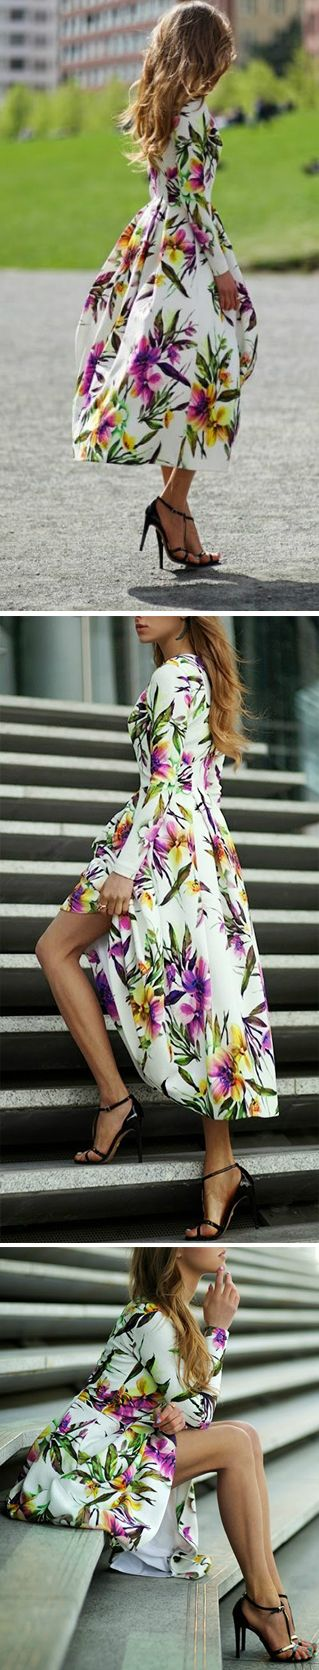 We're setting you up with the drool-worthy maxi dresses.This Chic Floral Pattern Pleated Dress is absolutely the season's must-have item! More surprise at OASAP!